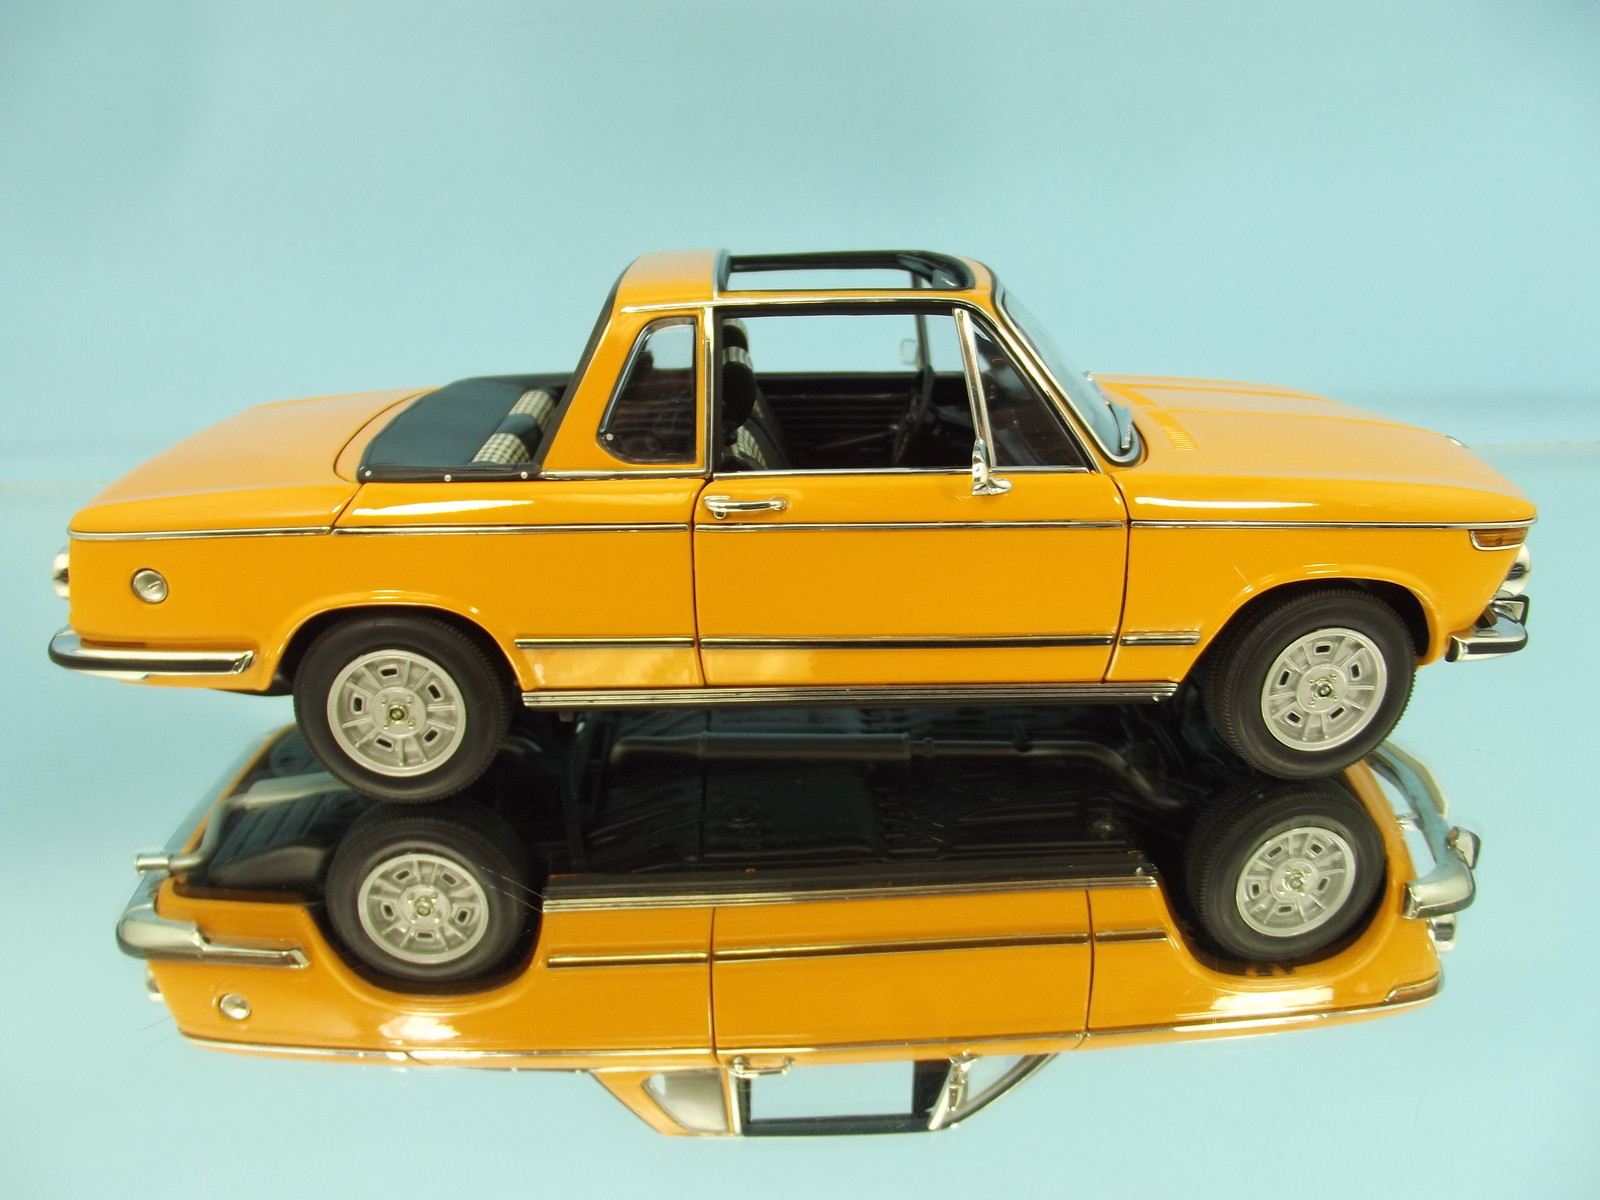 1:18 Minichamps Dealer Promo Edition '71-'73 BMW 2002 Cabrio Item 80430300713